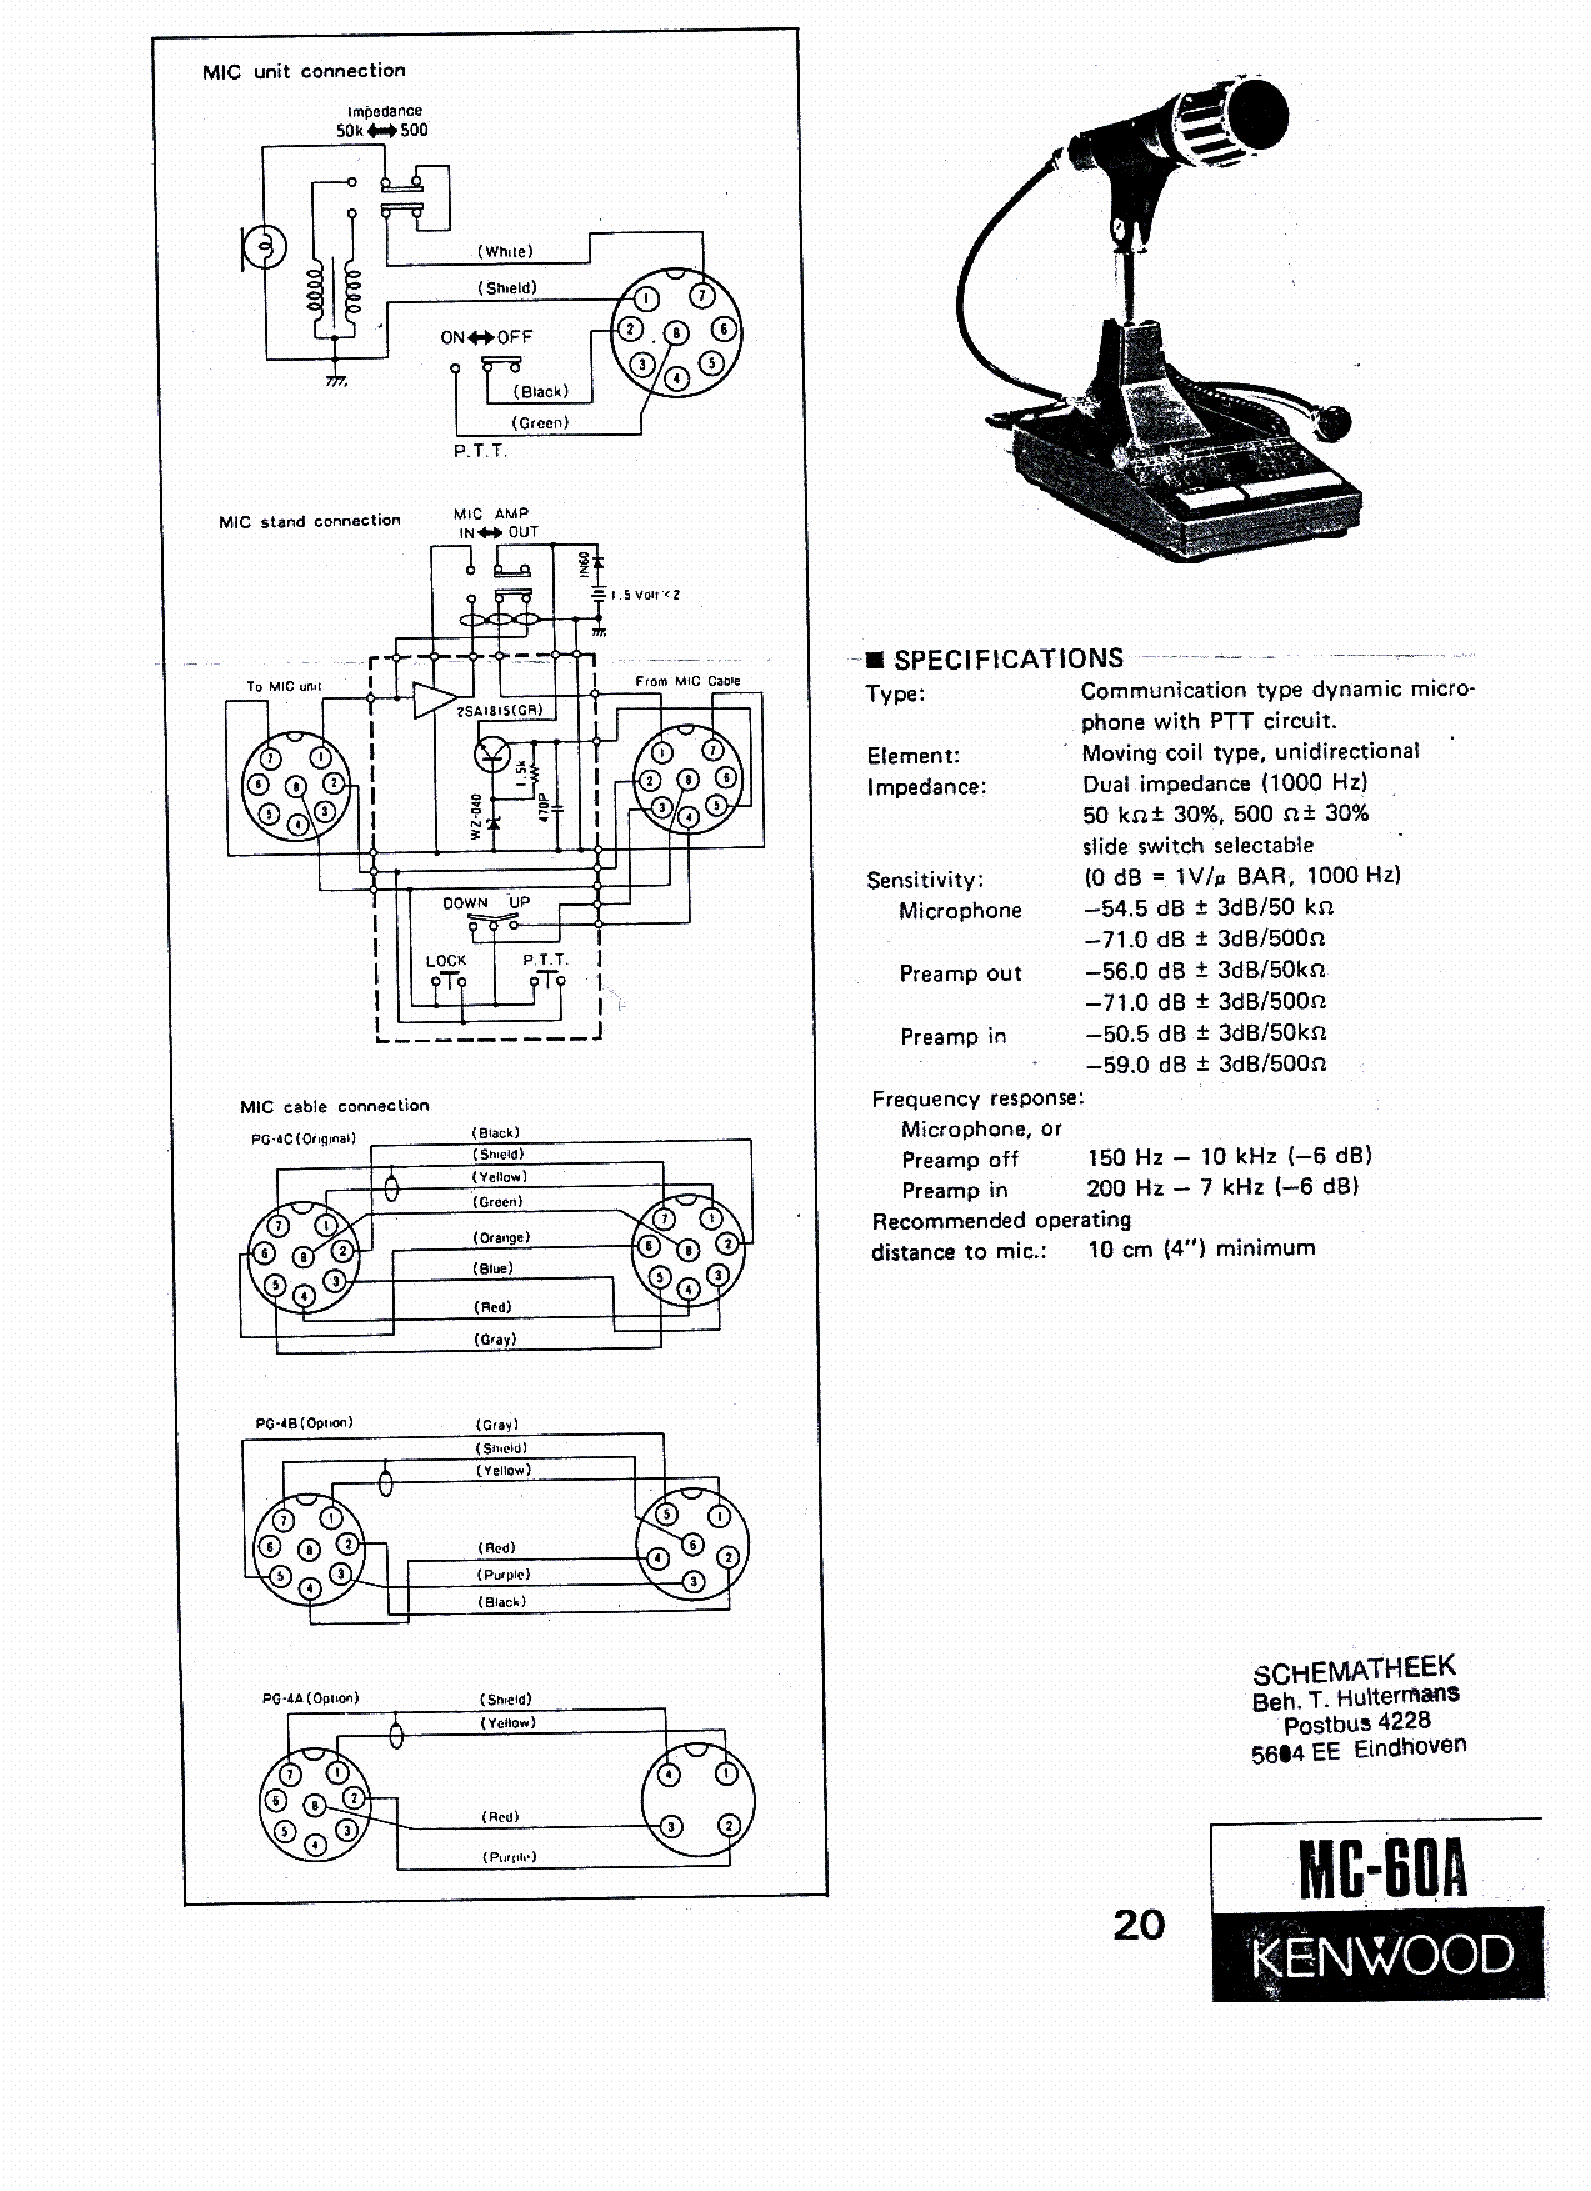 [SCHEMATICS_48IS]  OY_5635] Kenwood Mc 60 Microphone Wiring Diagram Mc55 Modifications Schematic  Wiring | Kenwood Mc 50 Wiring Diagram |  | Acion Inoma Ultr Xeira Mohammedshrine Librar Wiring 101